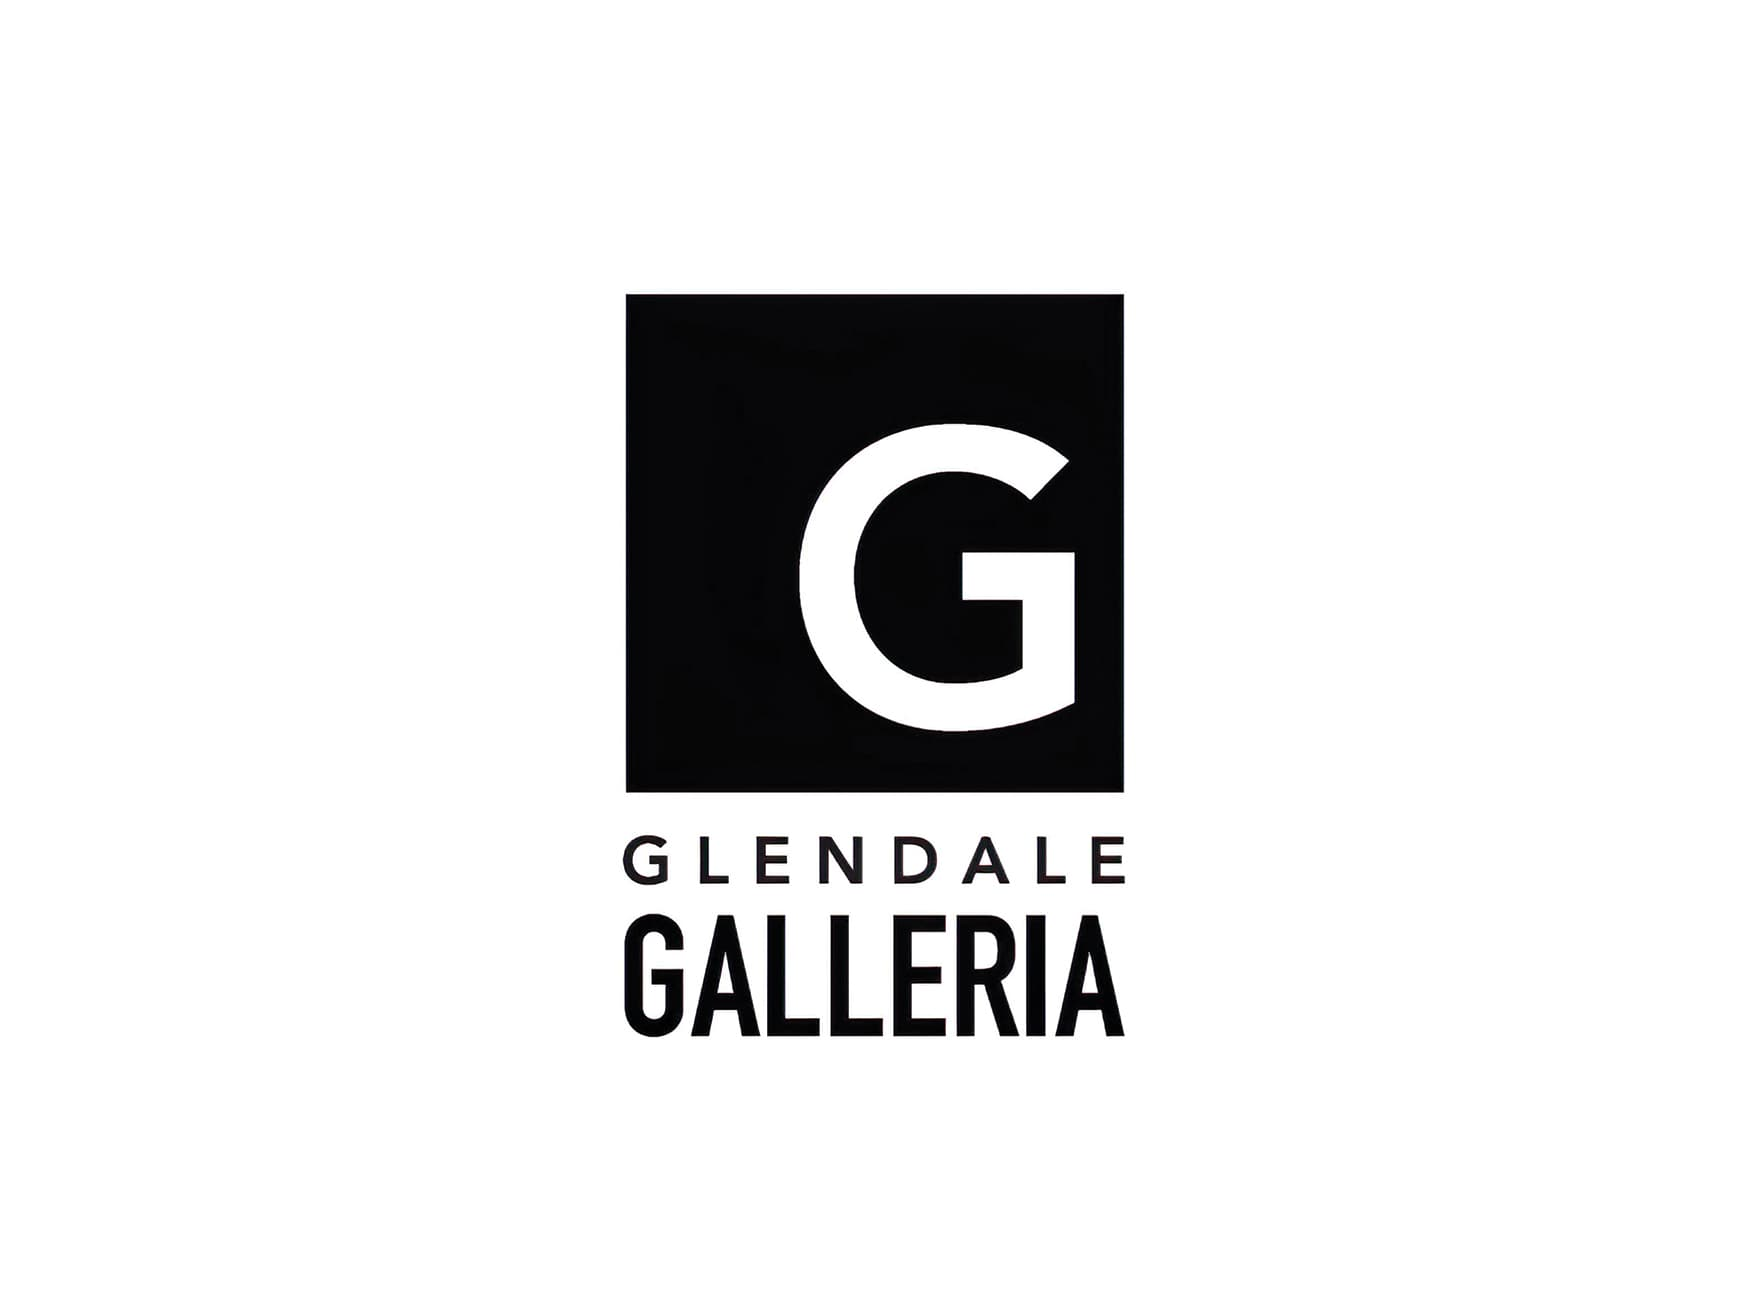 Glendale Galleria. A retail destination in Glendale, California. Project Branding and Logo design.